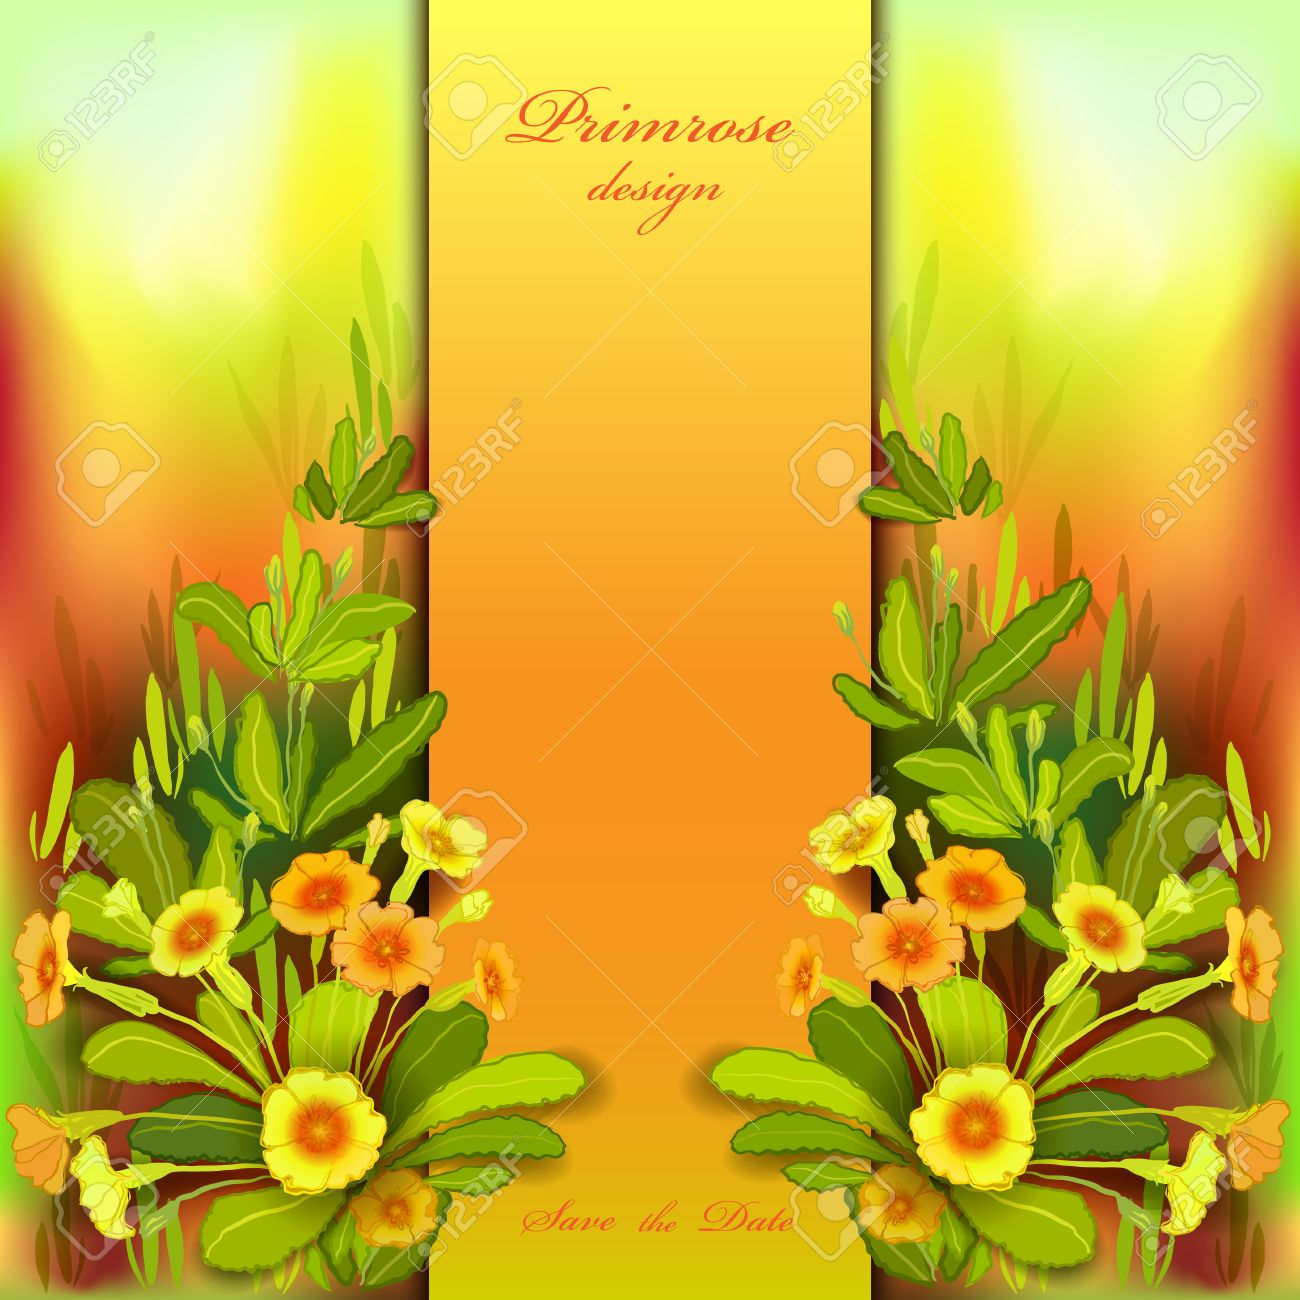 Spring summer flowers floral background vertical border frame spring summer flowers floral background vertical border frame with yellow primroses and green leaves mightylinksfo